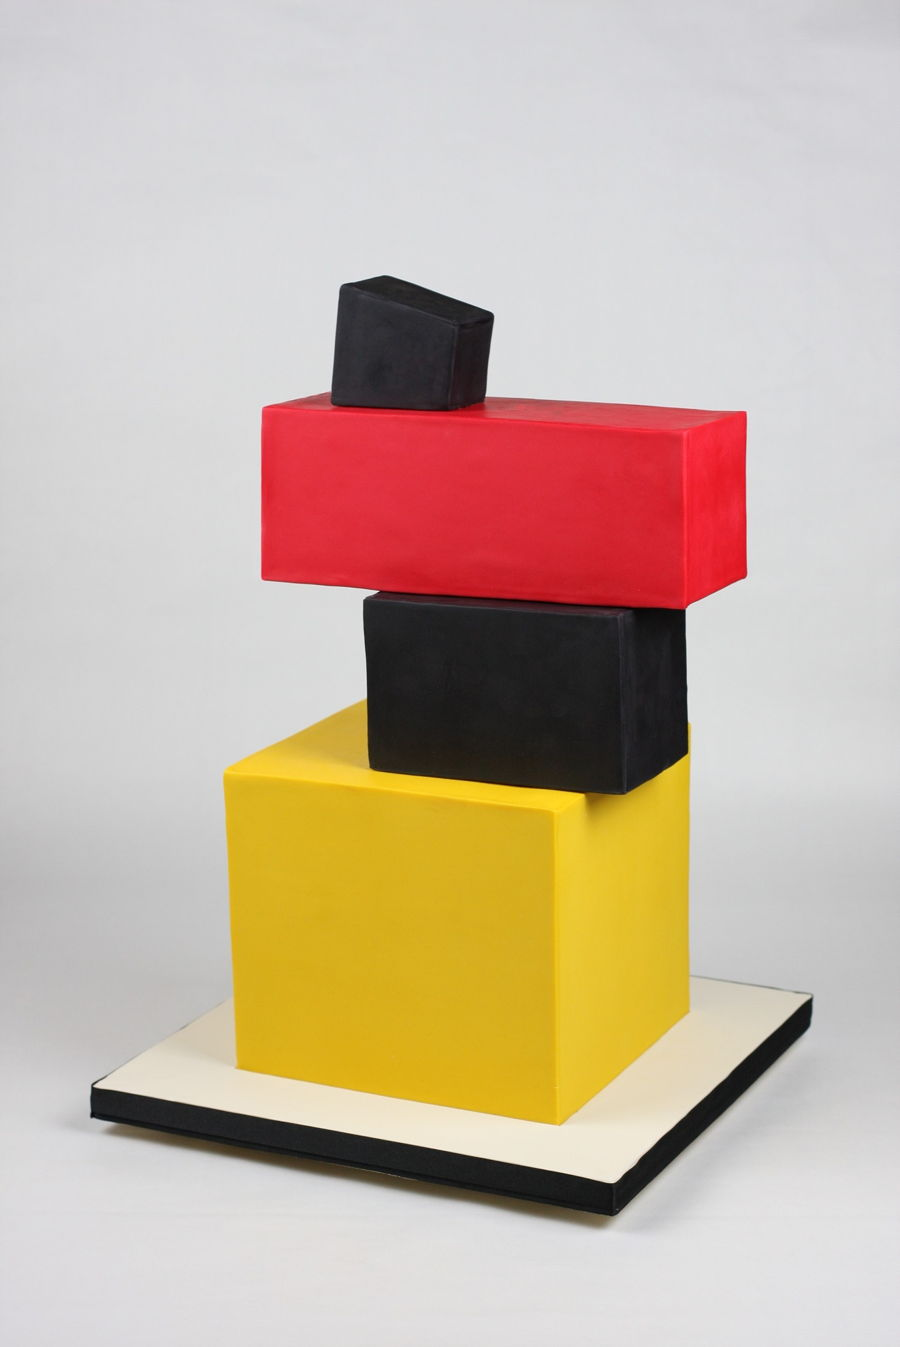 Cake Based On One Of The Avant-Garde Painting By Kazimir Malevich on Cake Central